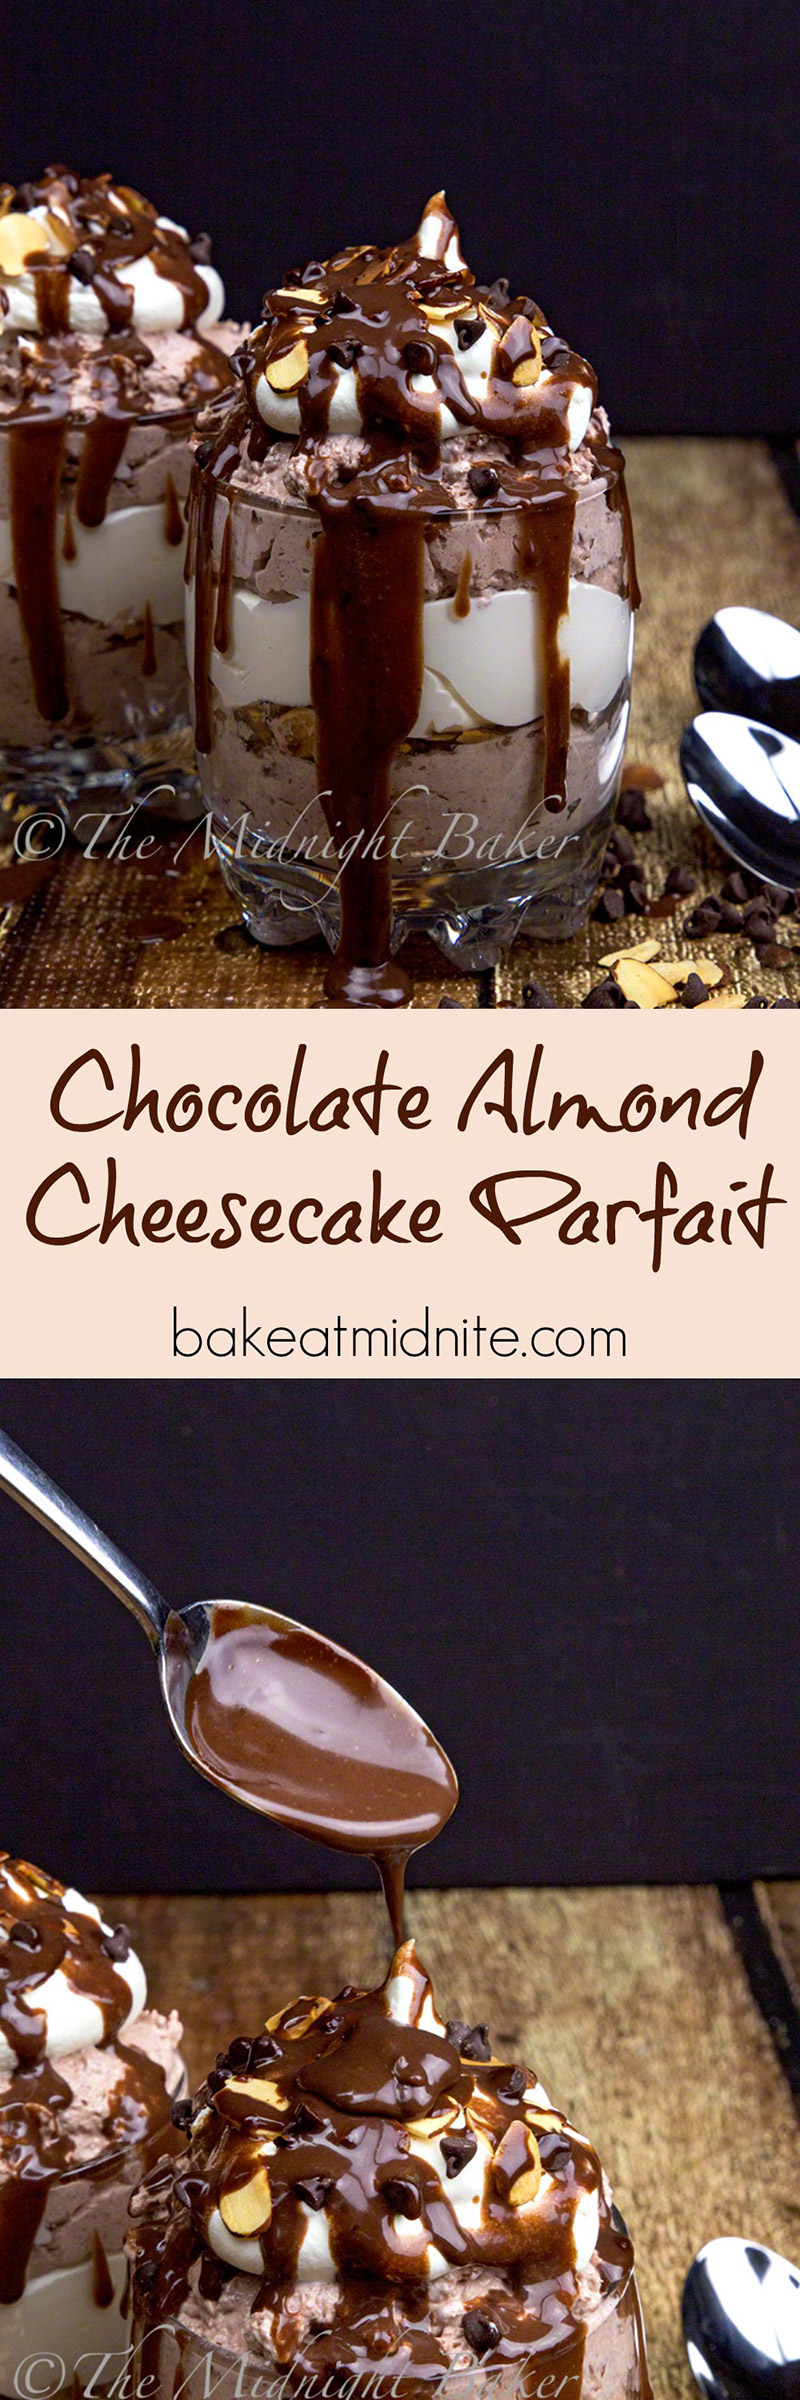 Decadent chocolate cheesecake and toasted almonds flavor this easy no-bake dessert